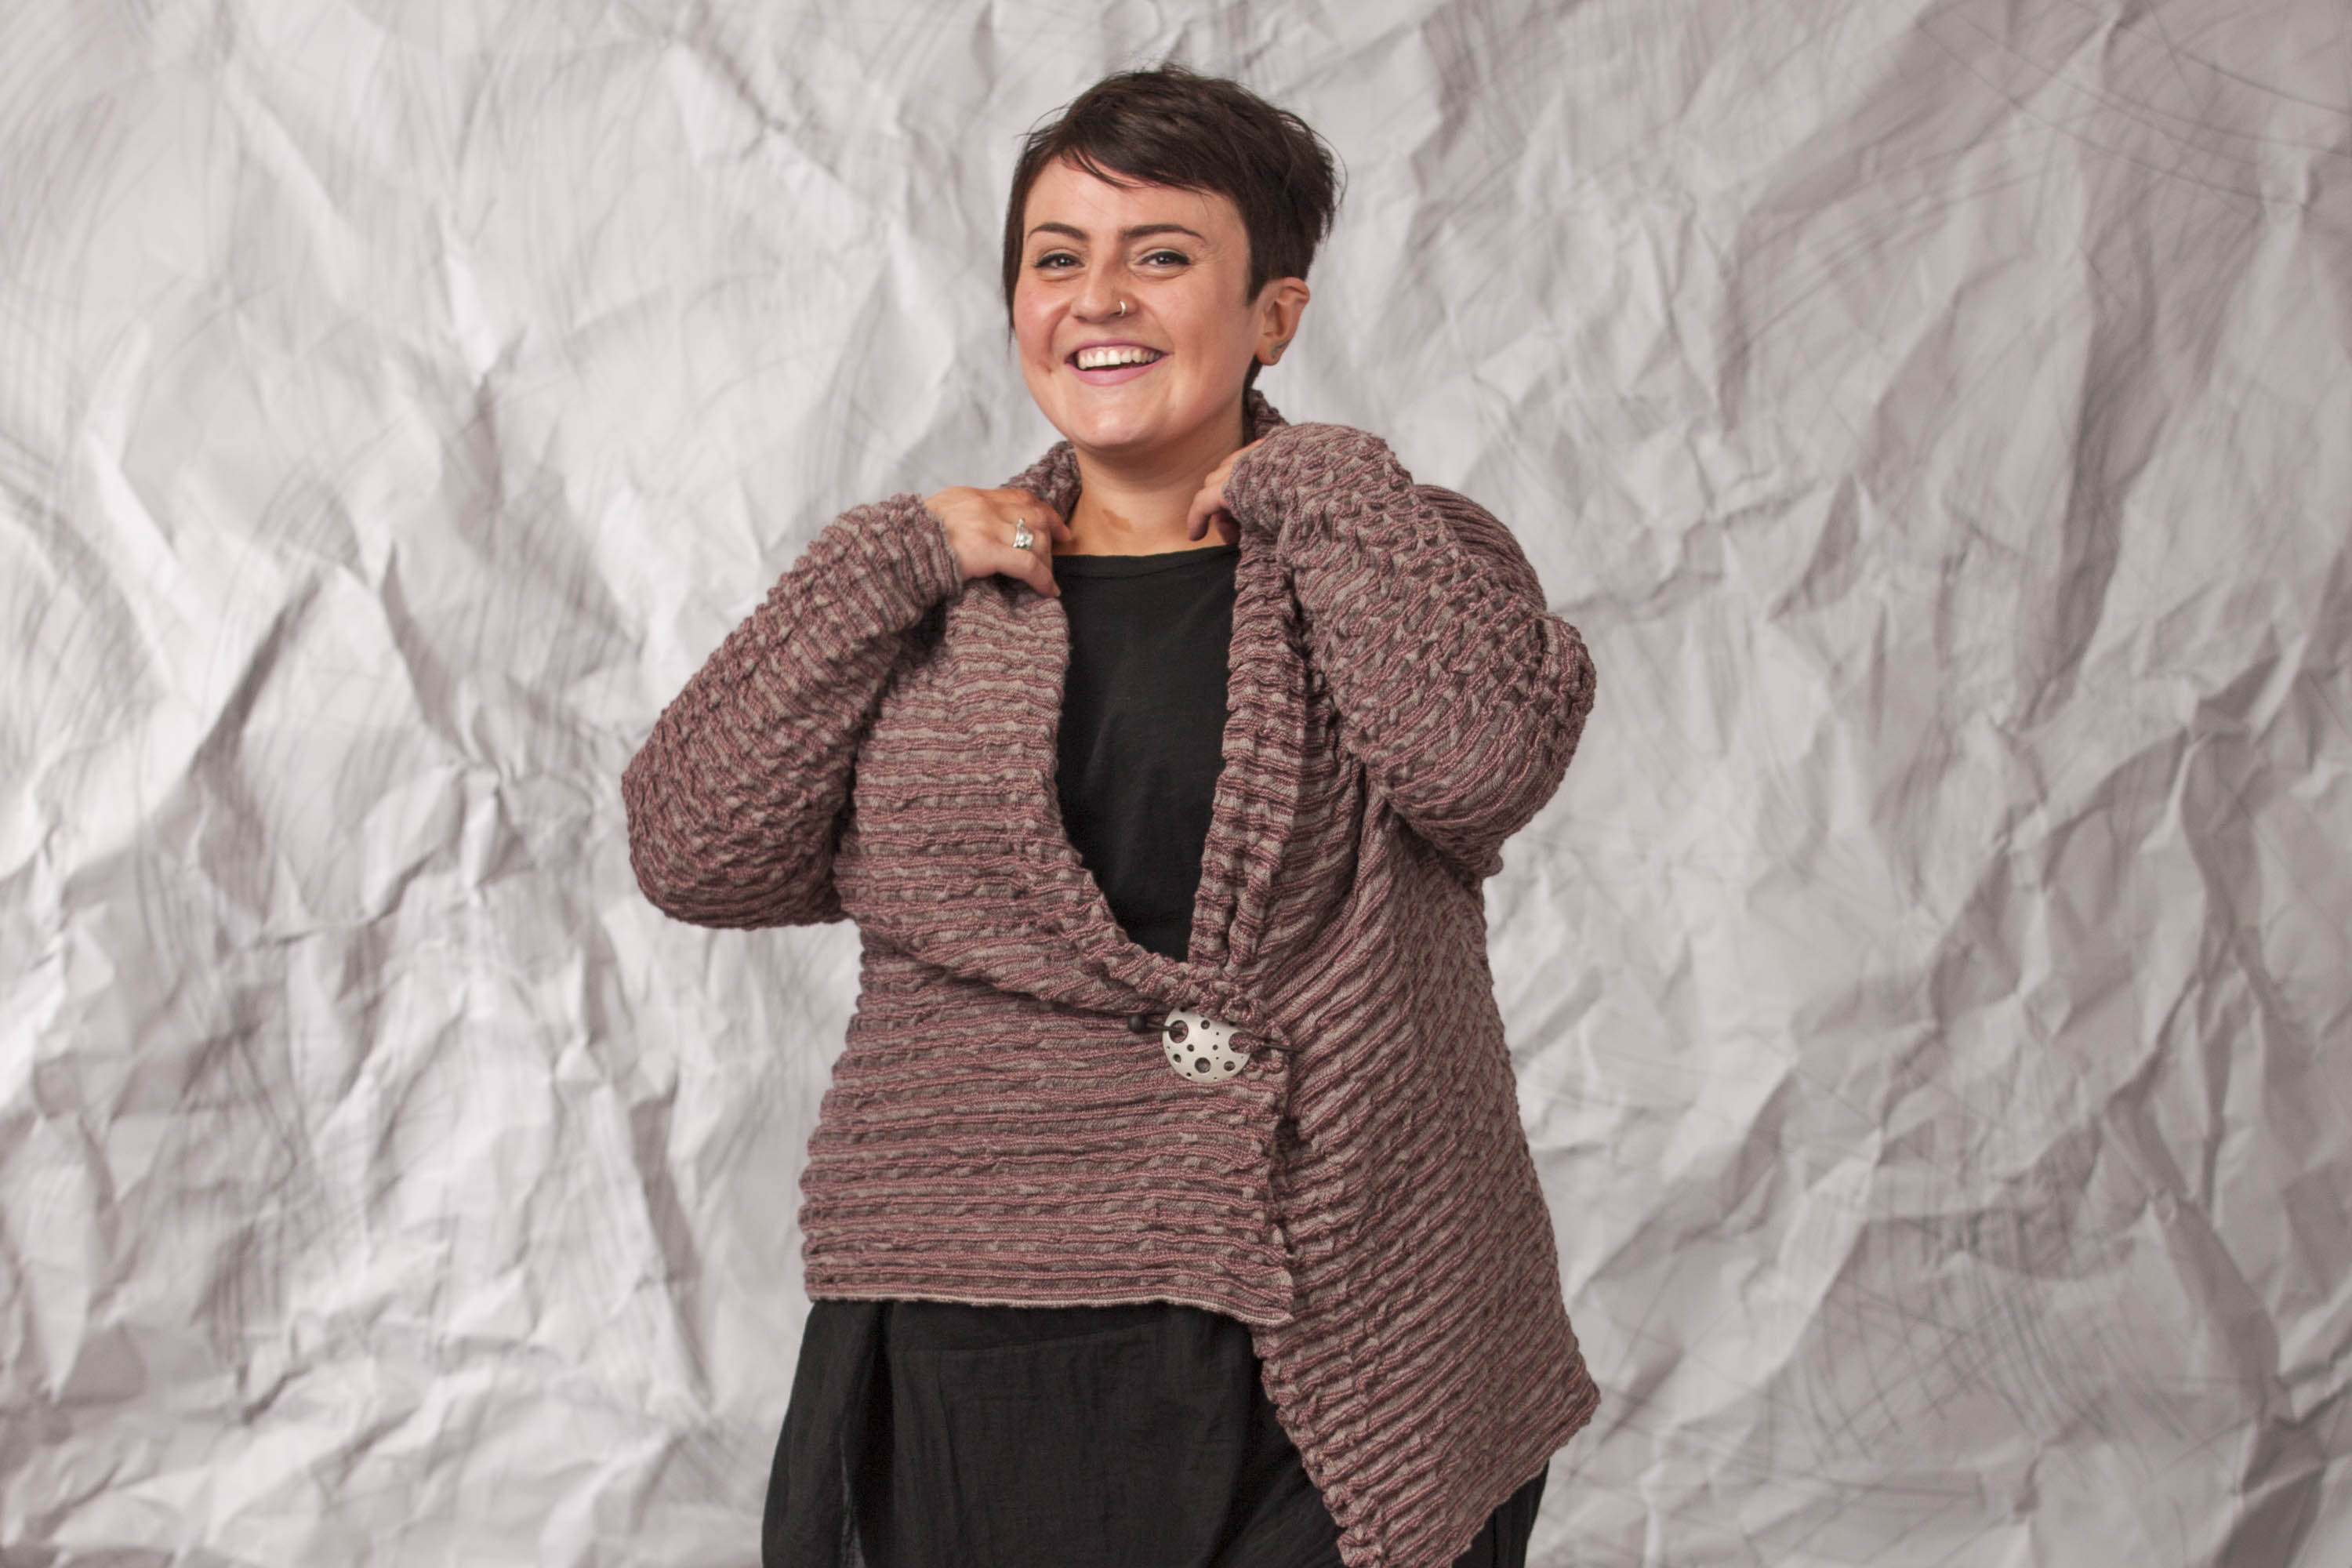 A softly ridged, warm grey open cardigan is worn over a black dress and fastened with a silver pin.